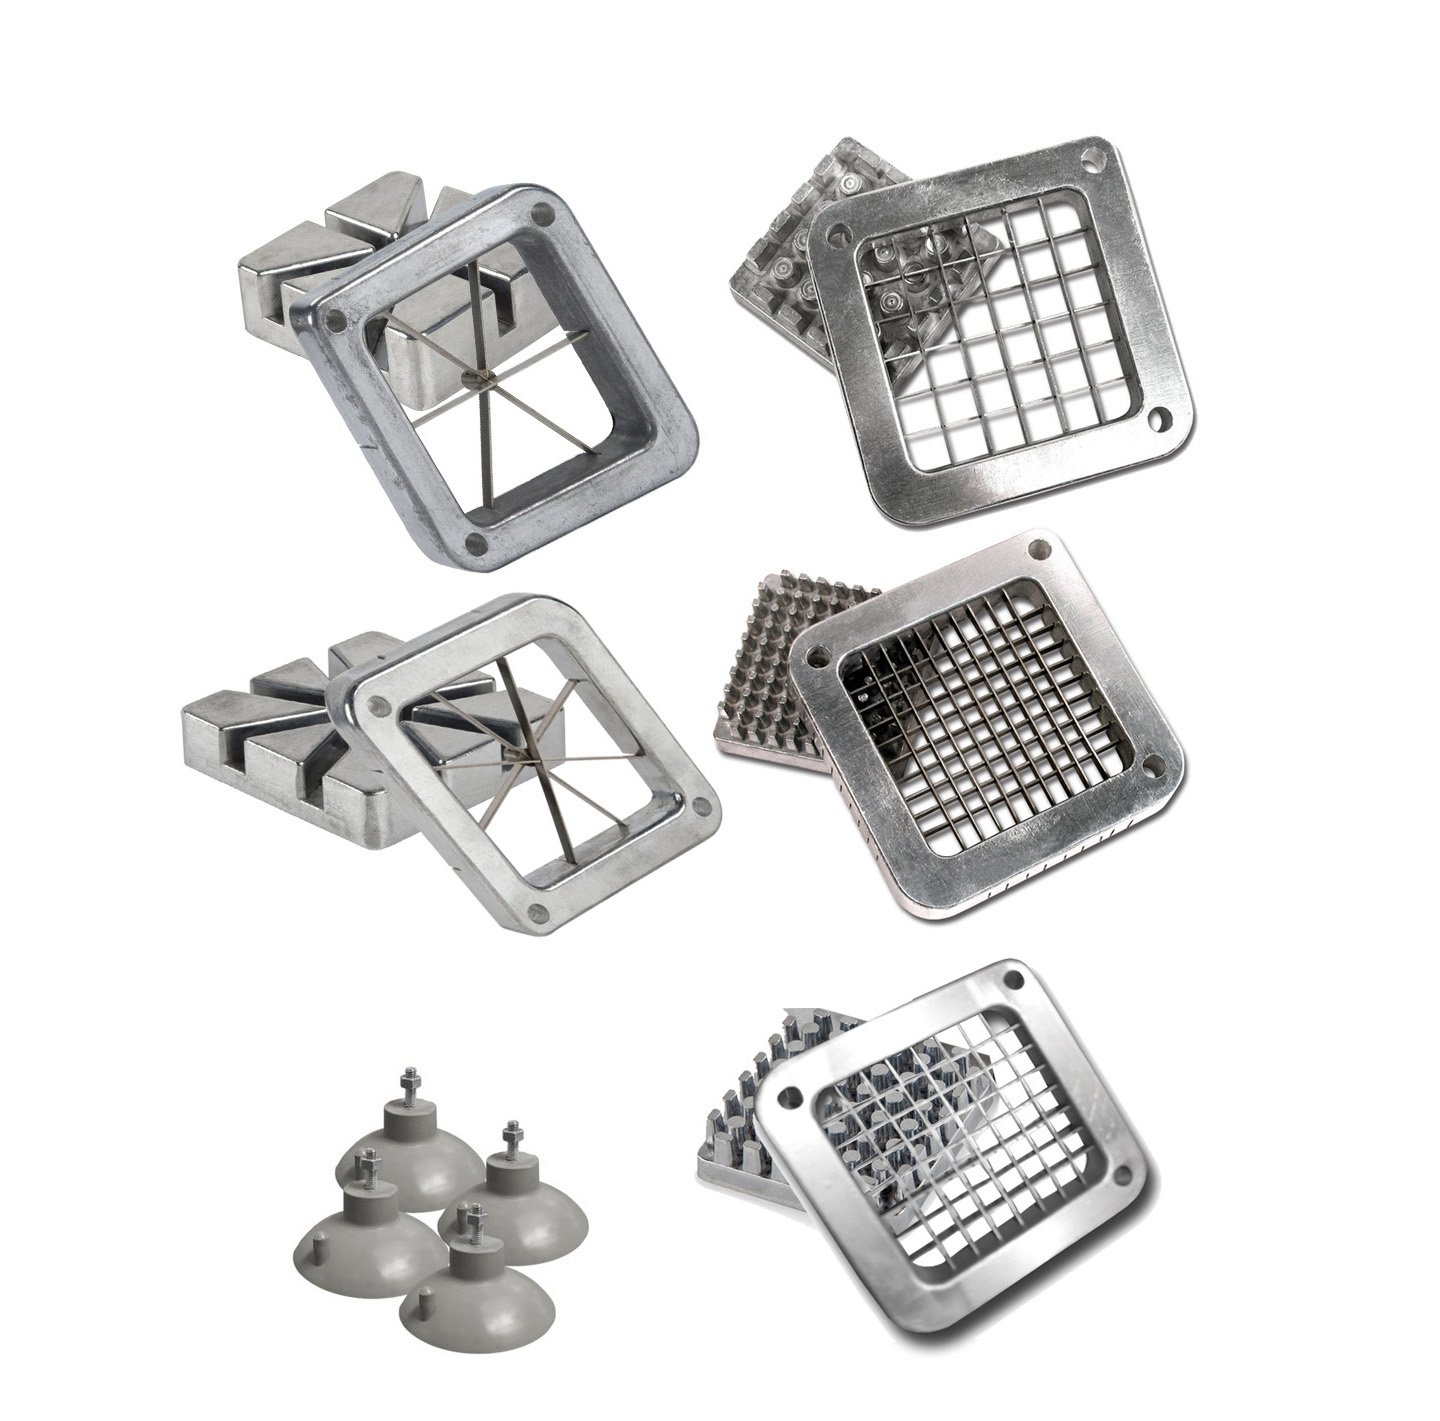 Tiger Chef Duty Commercial Grade French Fry Cutter Replacement Blades includes 1/2, 1/4 and 3/8 Dicer Blades and Blocks and 6 plus 8 wedge blades and blocks